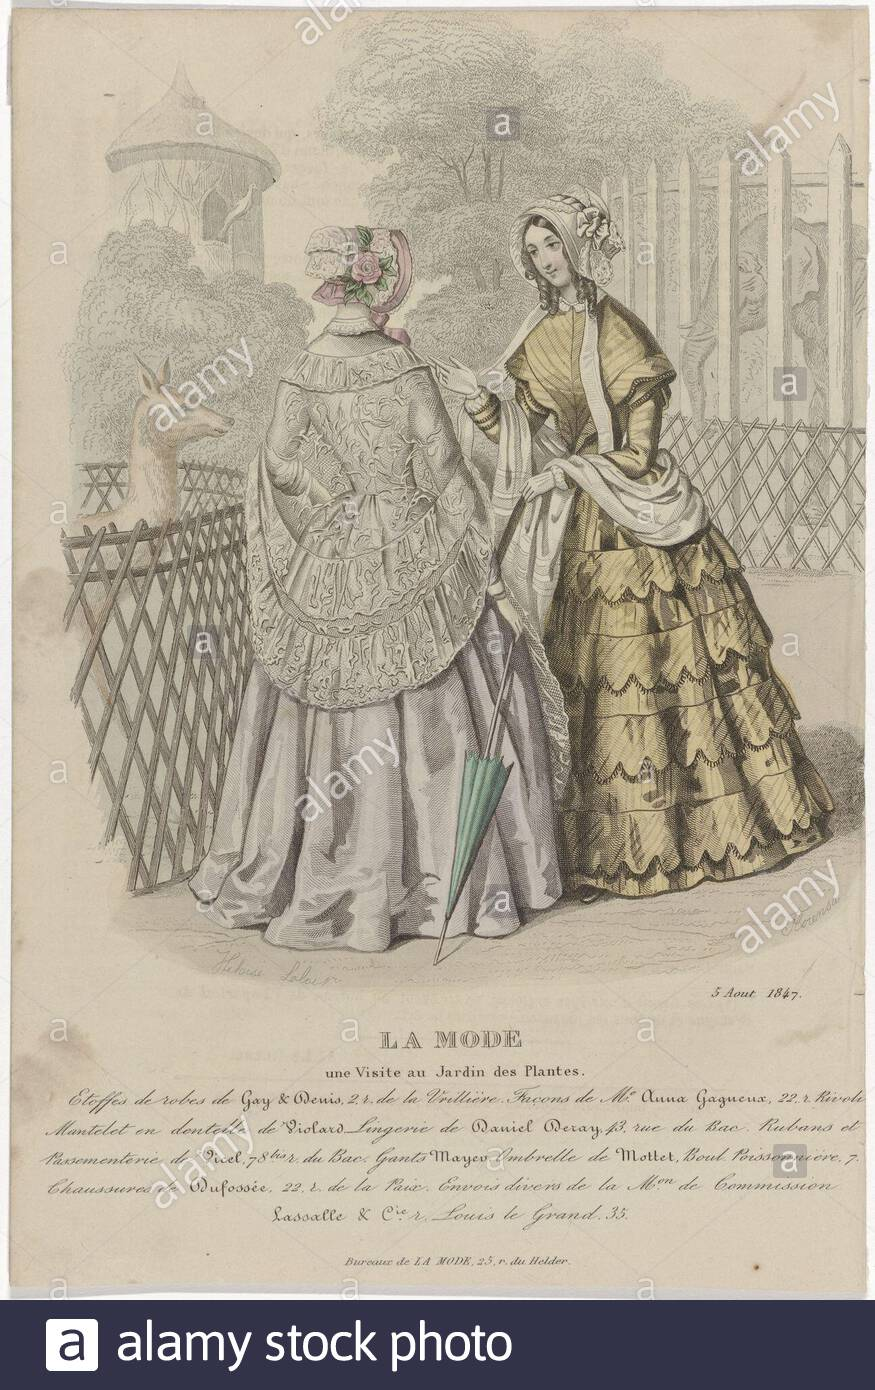 two women visit the botanical garden or zoo le jardin des plantes in paris according to the caption fabrics of dresses denis performed in the manner of anna gagueux mantelet small tippet in side violard here are some rules text advertising for various products print out the fashion magazine la mode 1829 1855 manufacturer printmaker florensa the closmenil listed property to drawing heloise leloir colin listed property place manufacture paris date 1847 physical features engra hand colored material paper technique engra printing process hand color measurement 2B